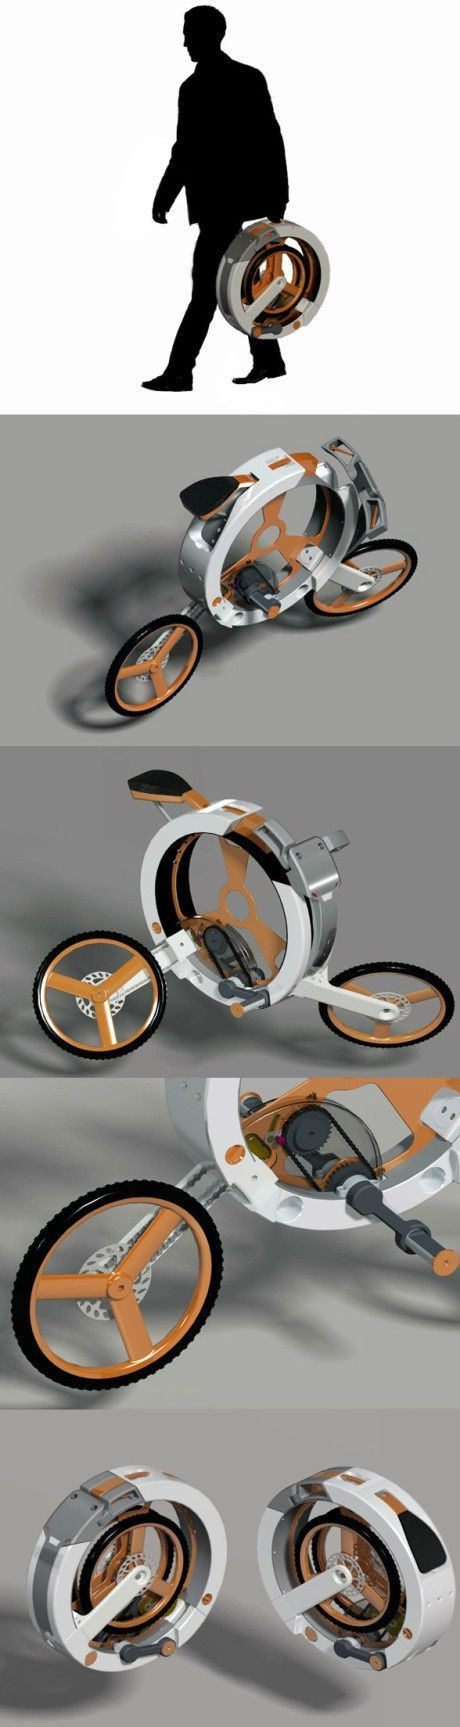 donut bike is this from apple cool gadgets in 2018 pinterest fahrrad pedelec und technik. Black Bedroom Furniture Sets. Home Design Ideas